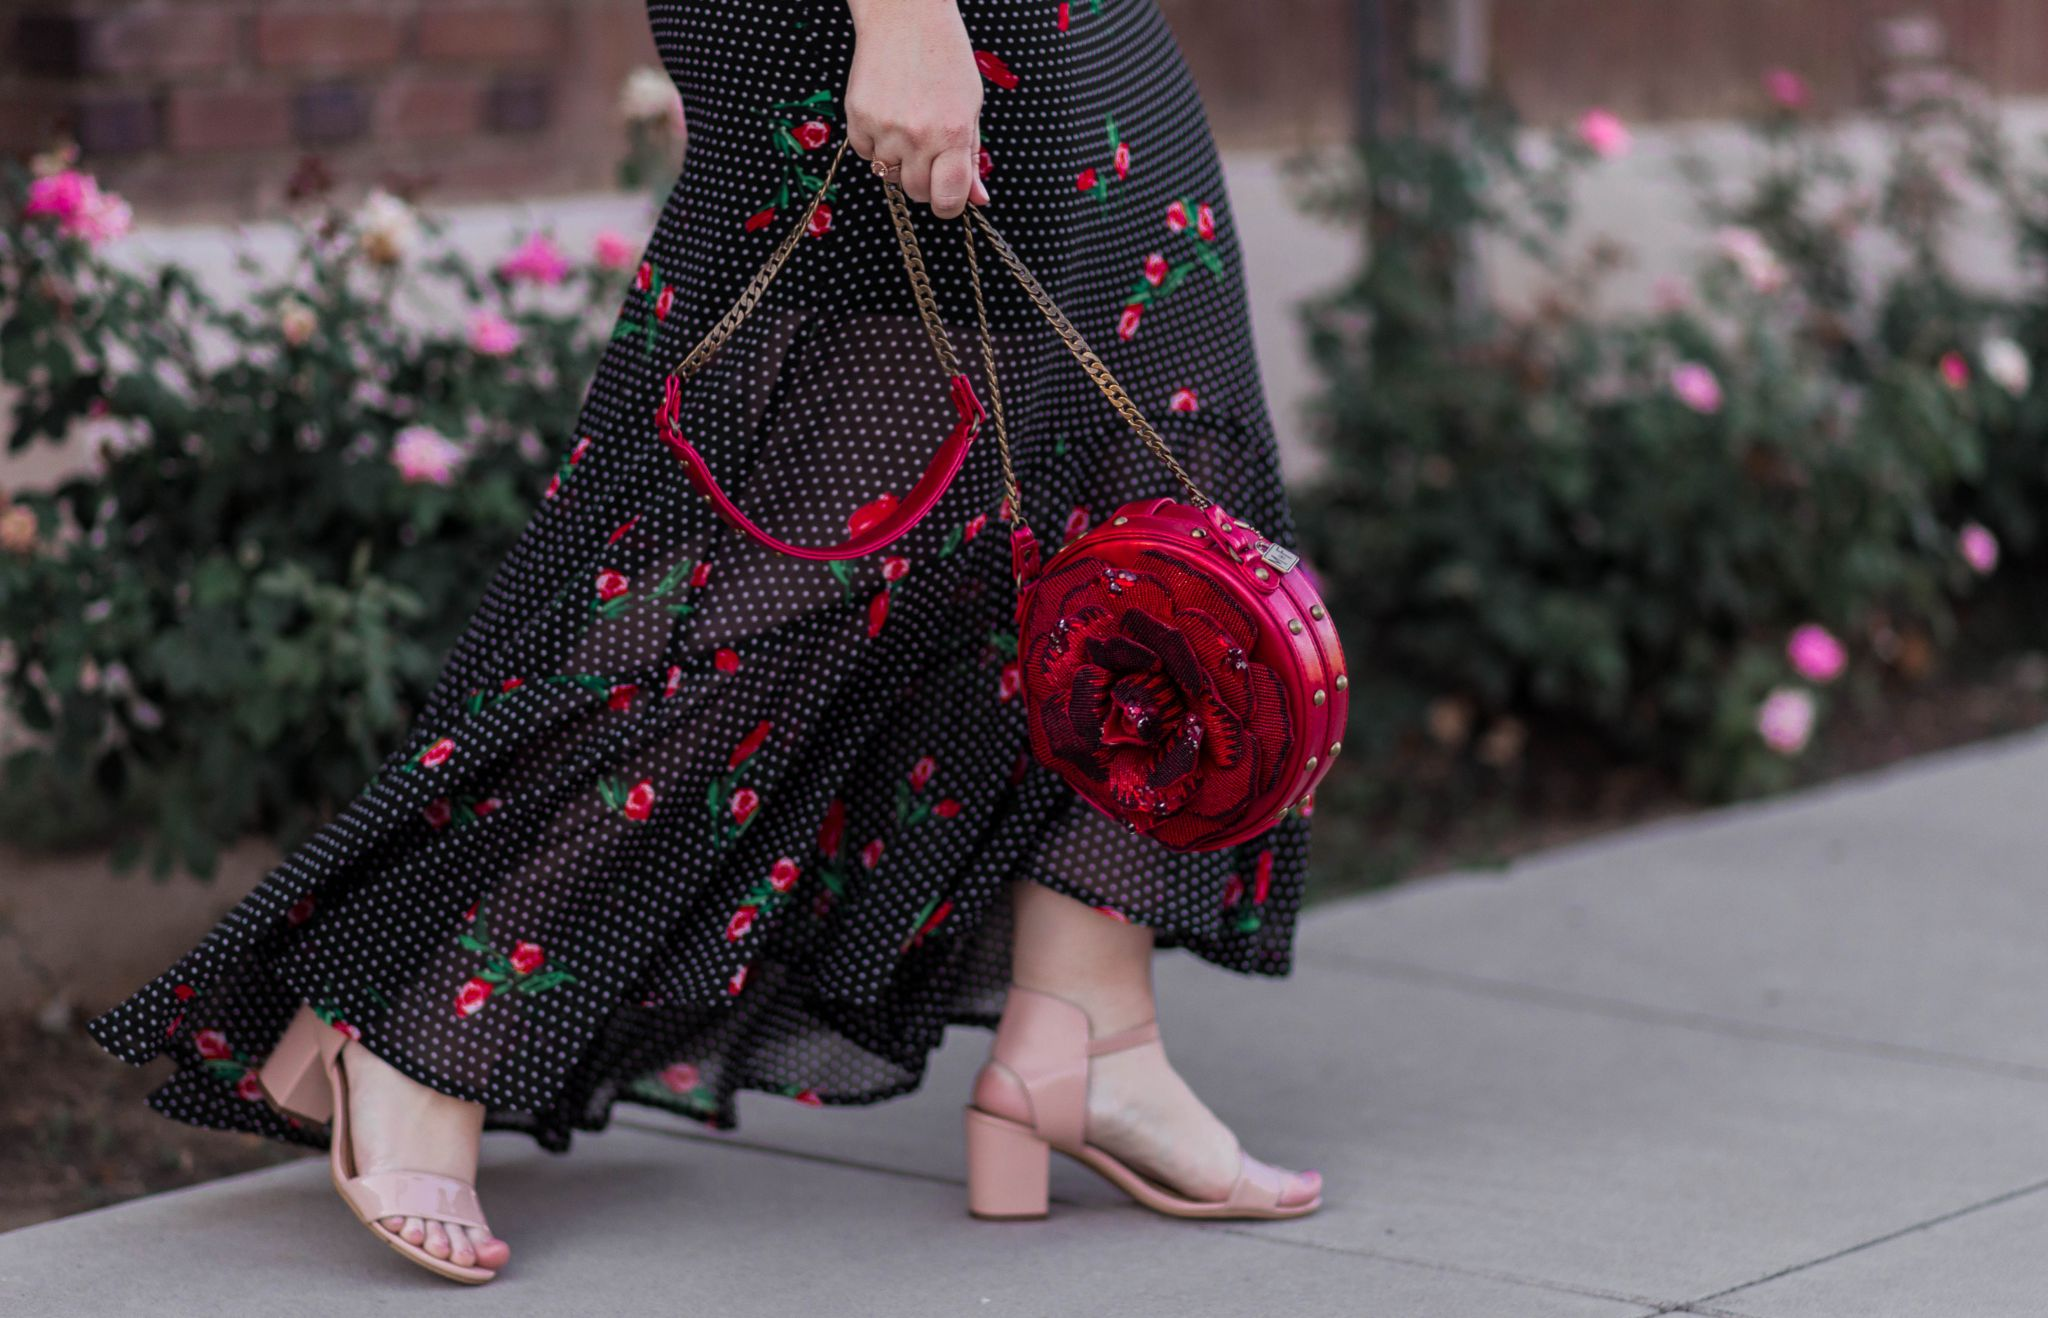 Elizabeth Hugen of Lizzie in Lace styles a beautiful Disney inspired handbag with a black polka dot and rose dress.ess.